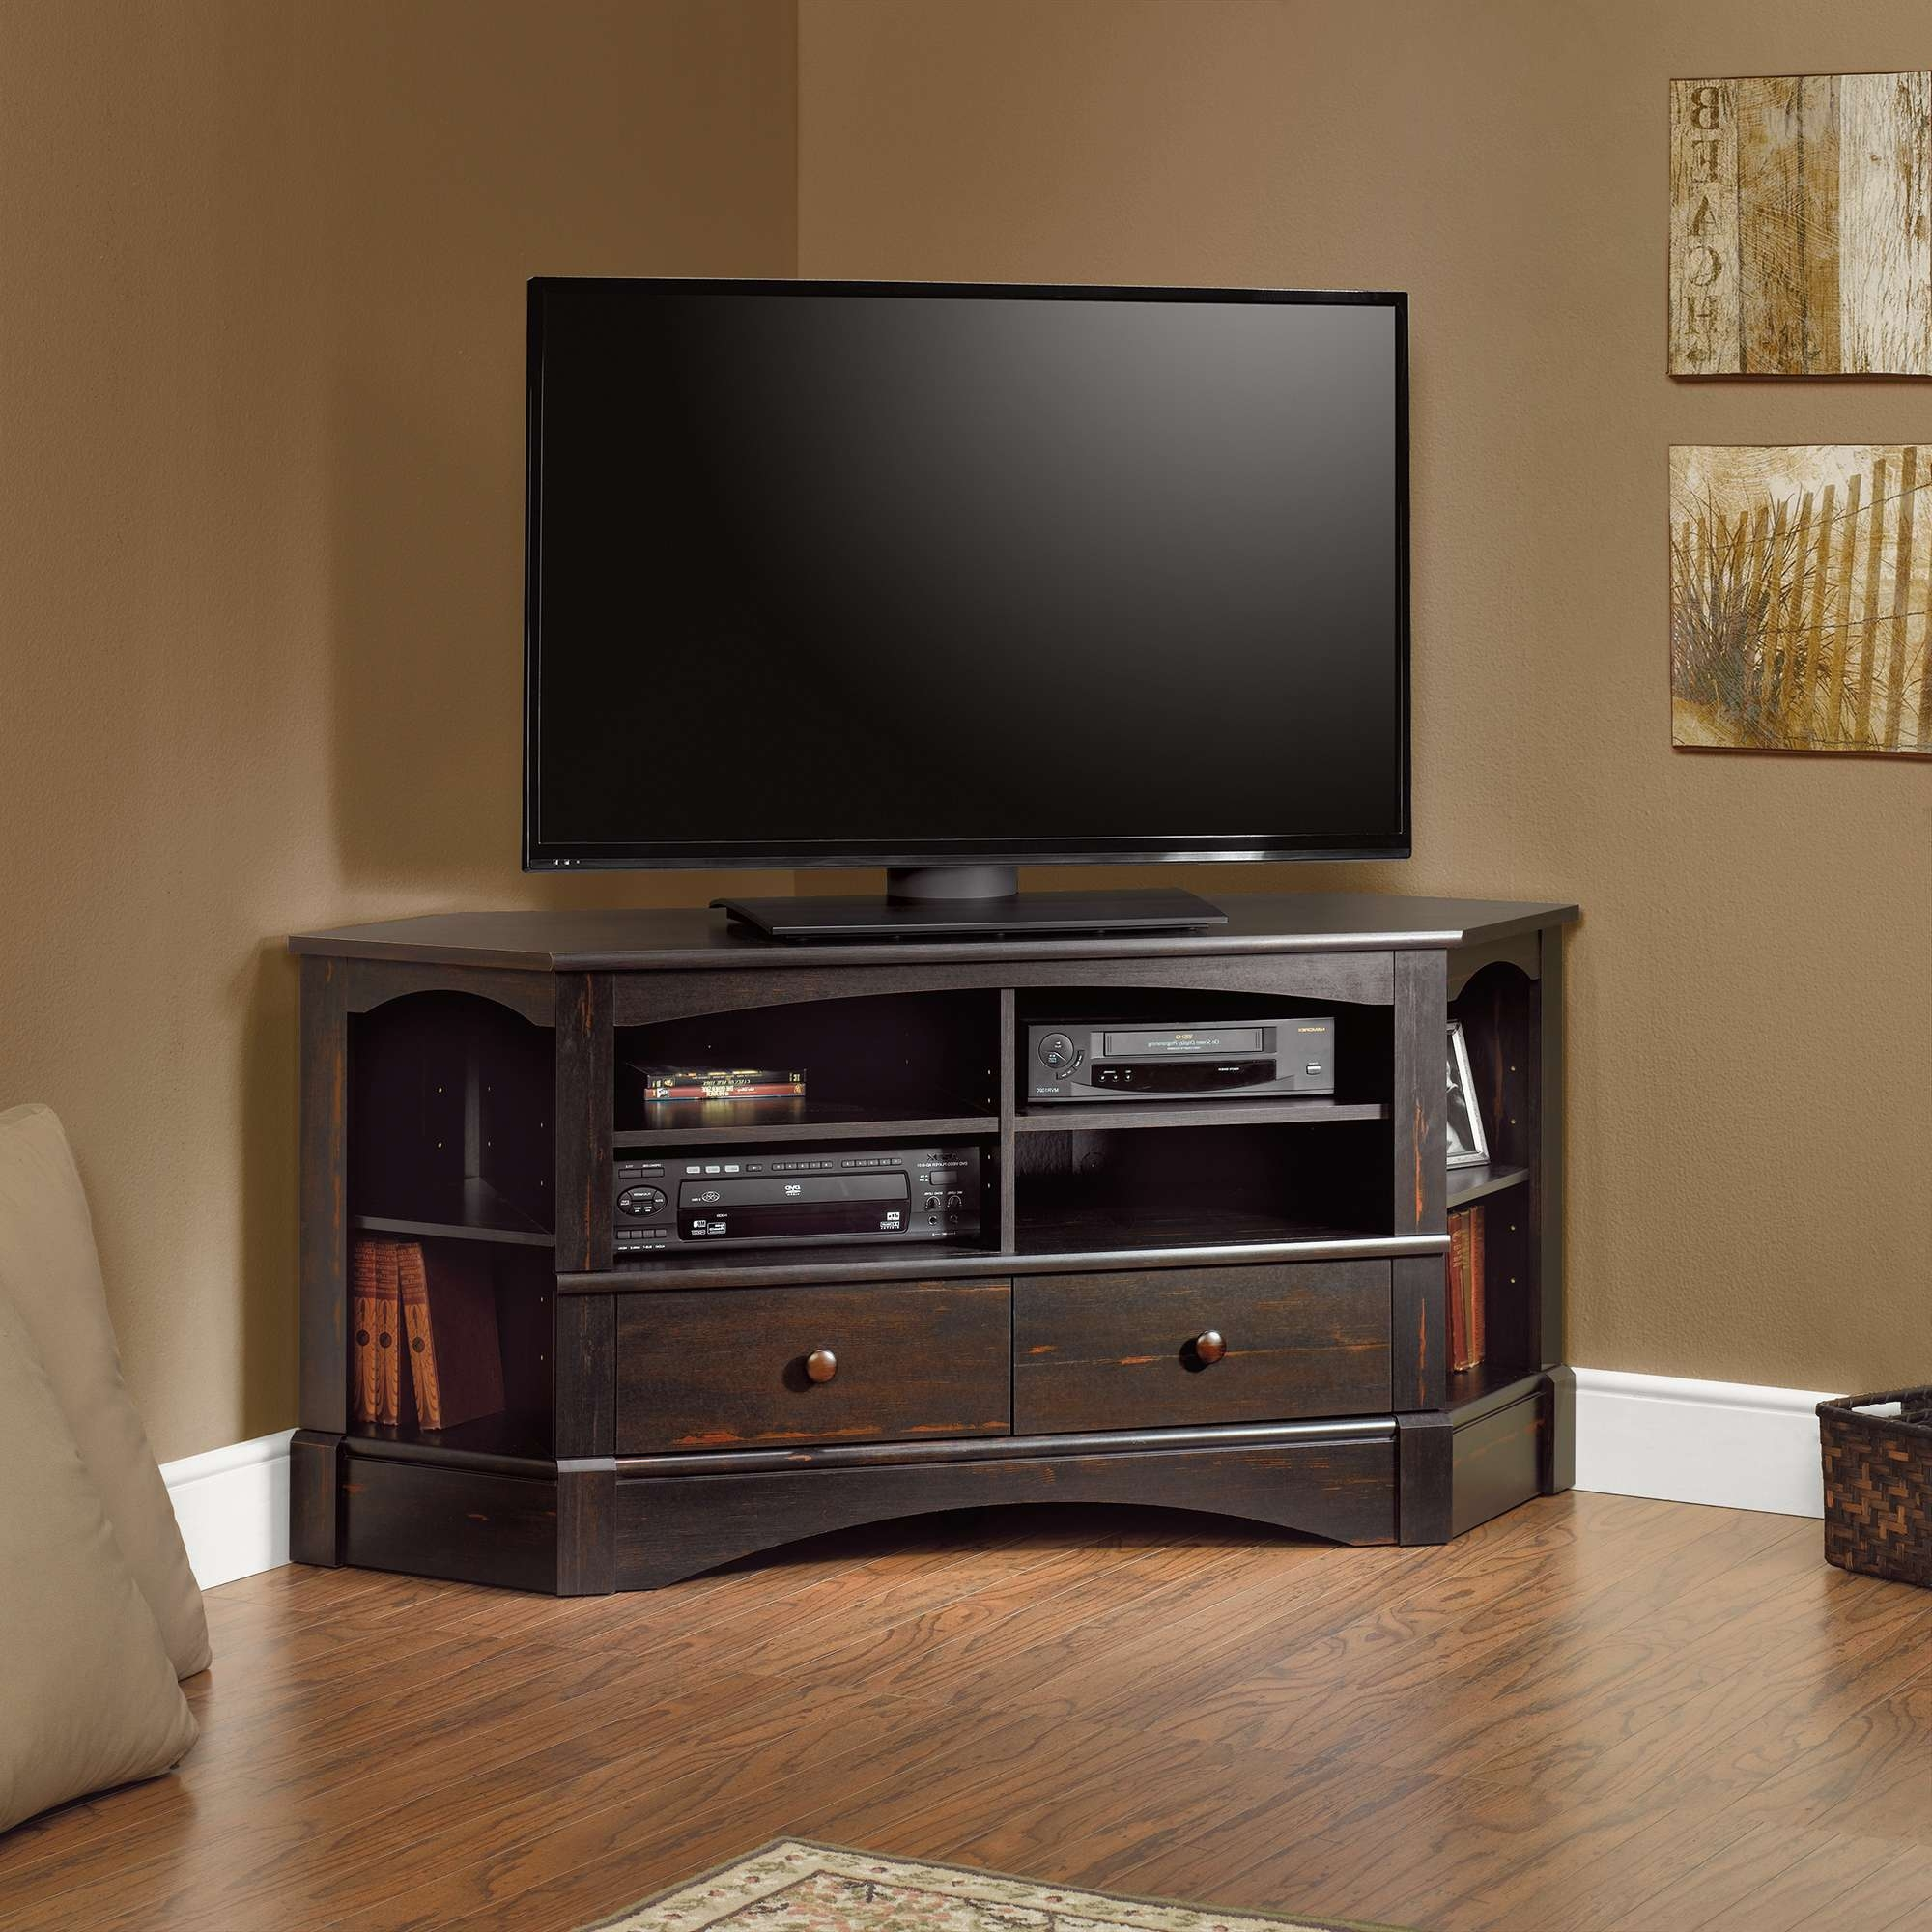 Harbor View | Corner Entertainment Credenza | 402902 | Sauder For Corner Tv Stands With Drawers (View 7 of 15)